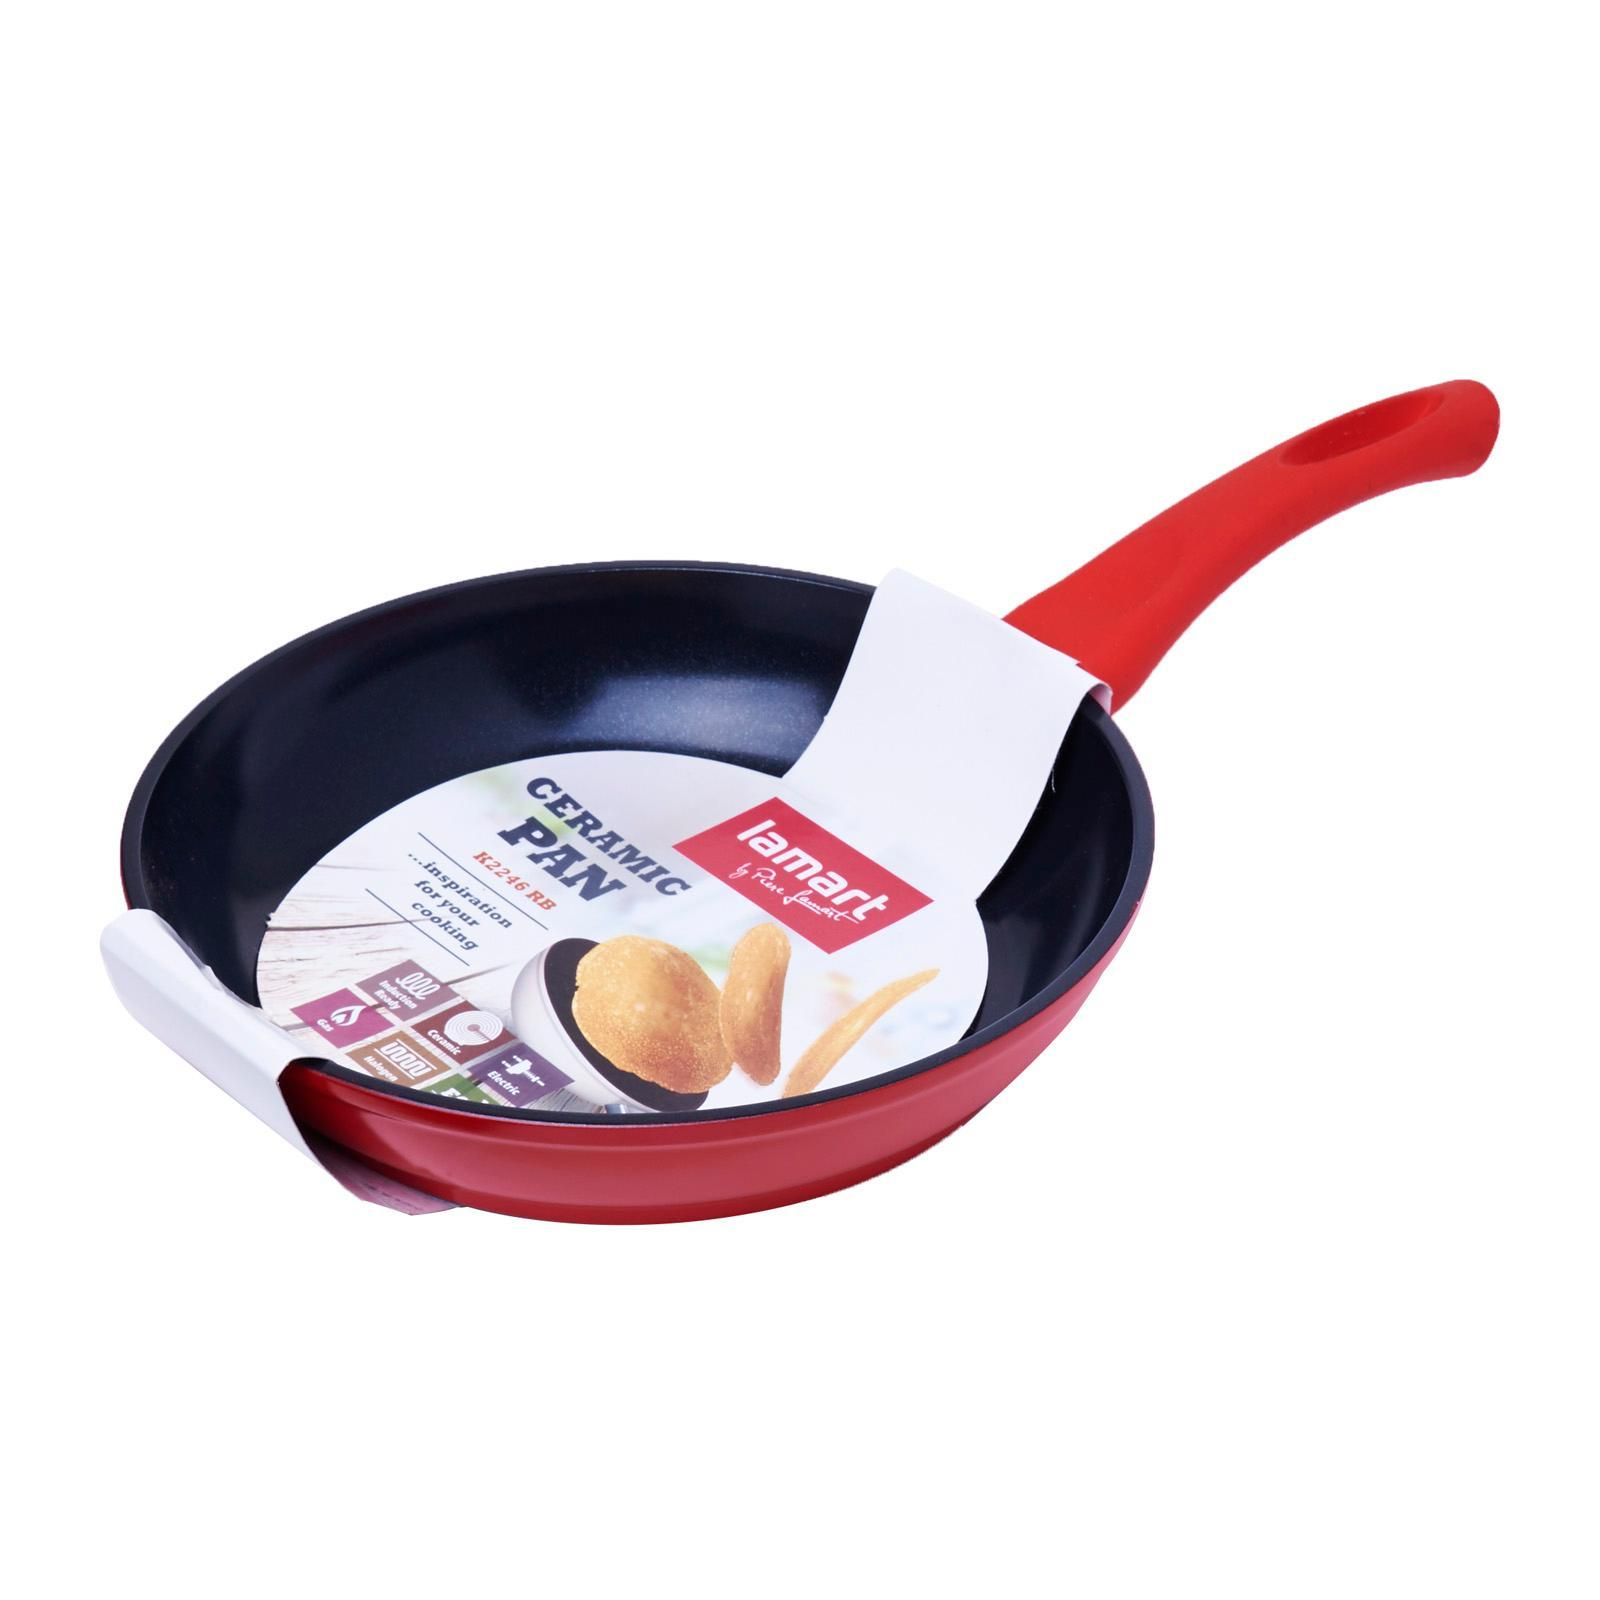 Lamart Induction Ready Ceramic Fry Pan 22/4.6Cm